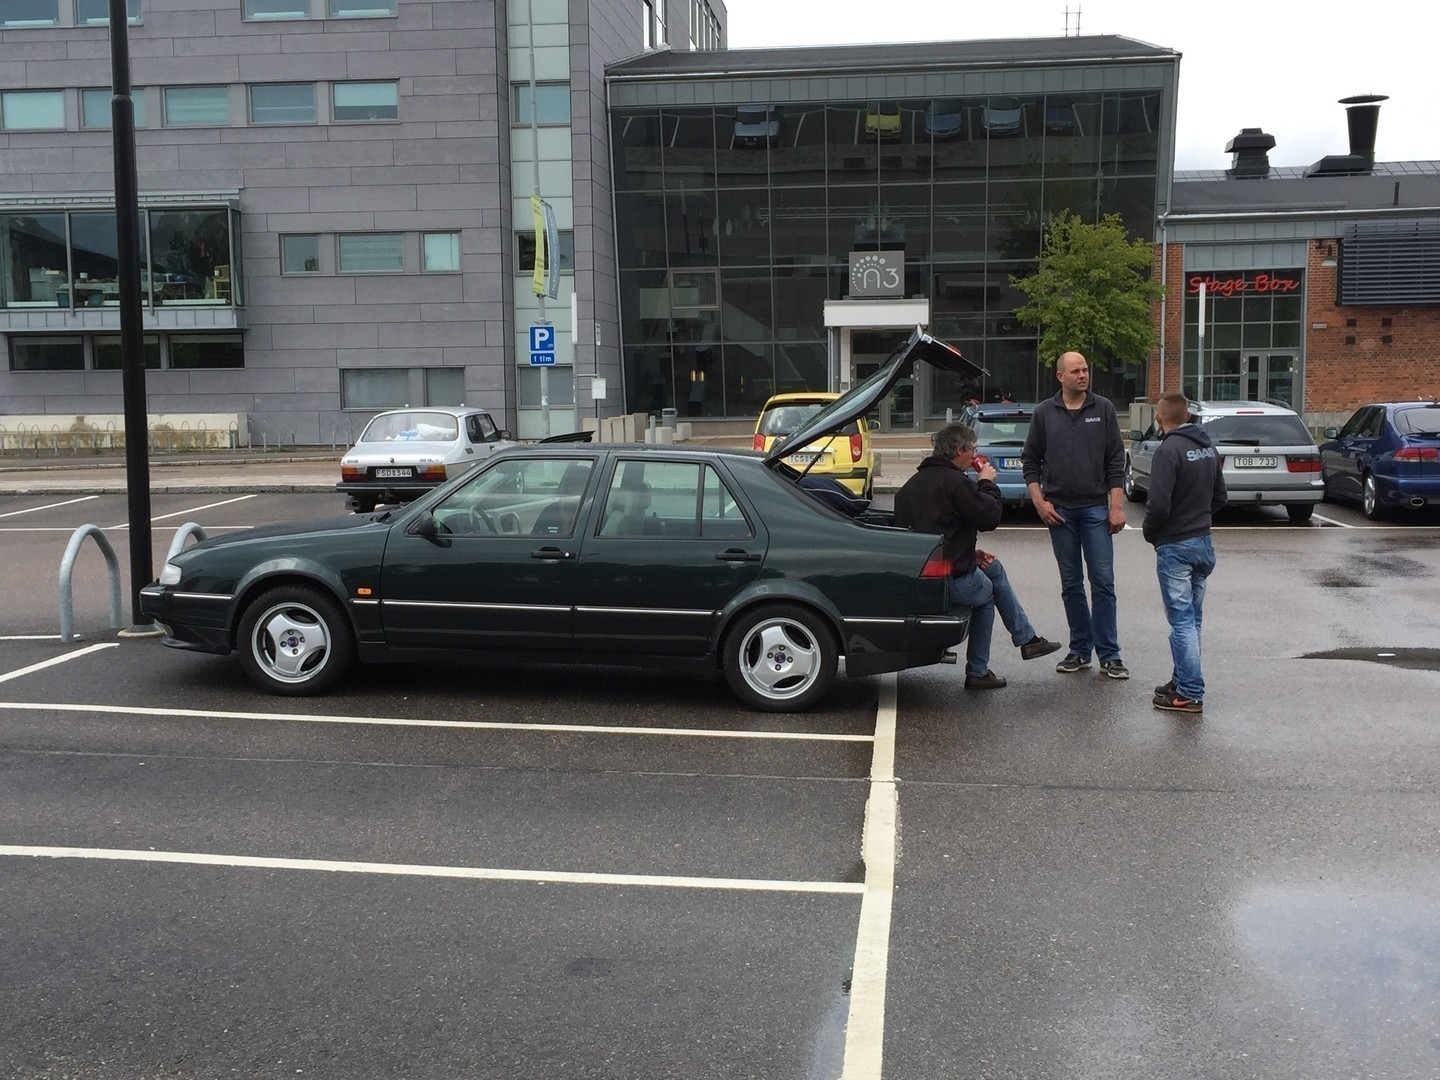 saab car museum support with 2015 06 06 12 07 41 on 2015 06 06 09 34 34 in addition Img 3097 further 2015 06 06 19 32 27 in addition Saab 97 as well Dsc 0004 1920x1200.